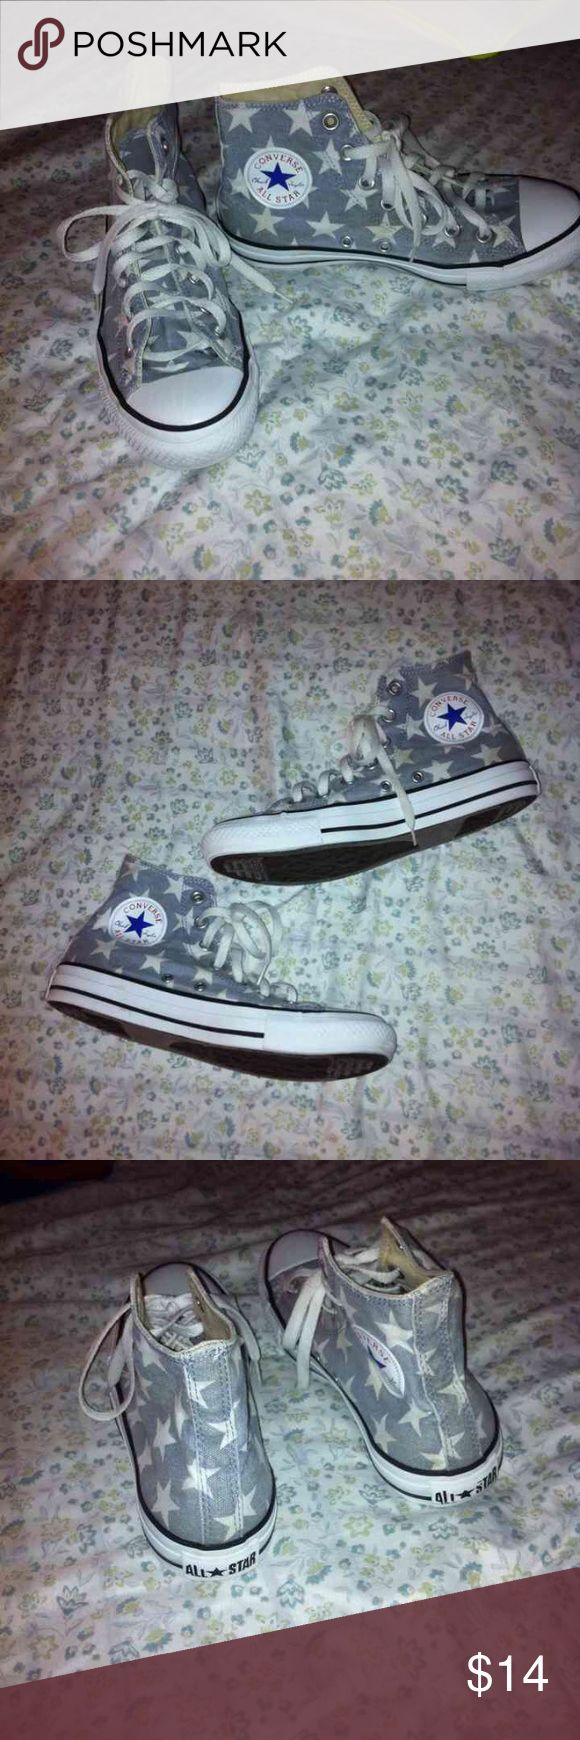 Ladies Converse Allstars Hi-tops used condition. These are used and have some dirty marks on them. Should be able to get out, barely noticeable unless you're inspecting. Really cute, have a lot of life left Converse Shoes Sneakers